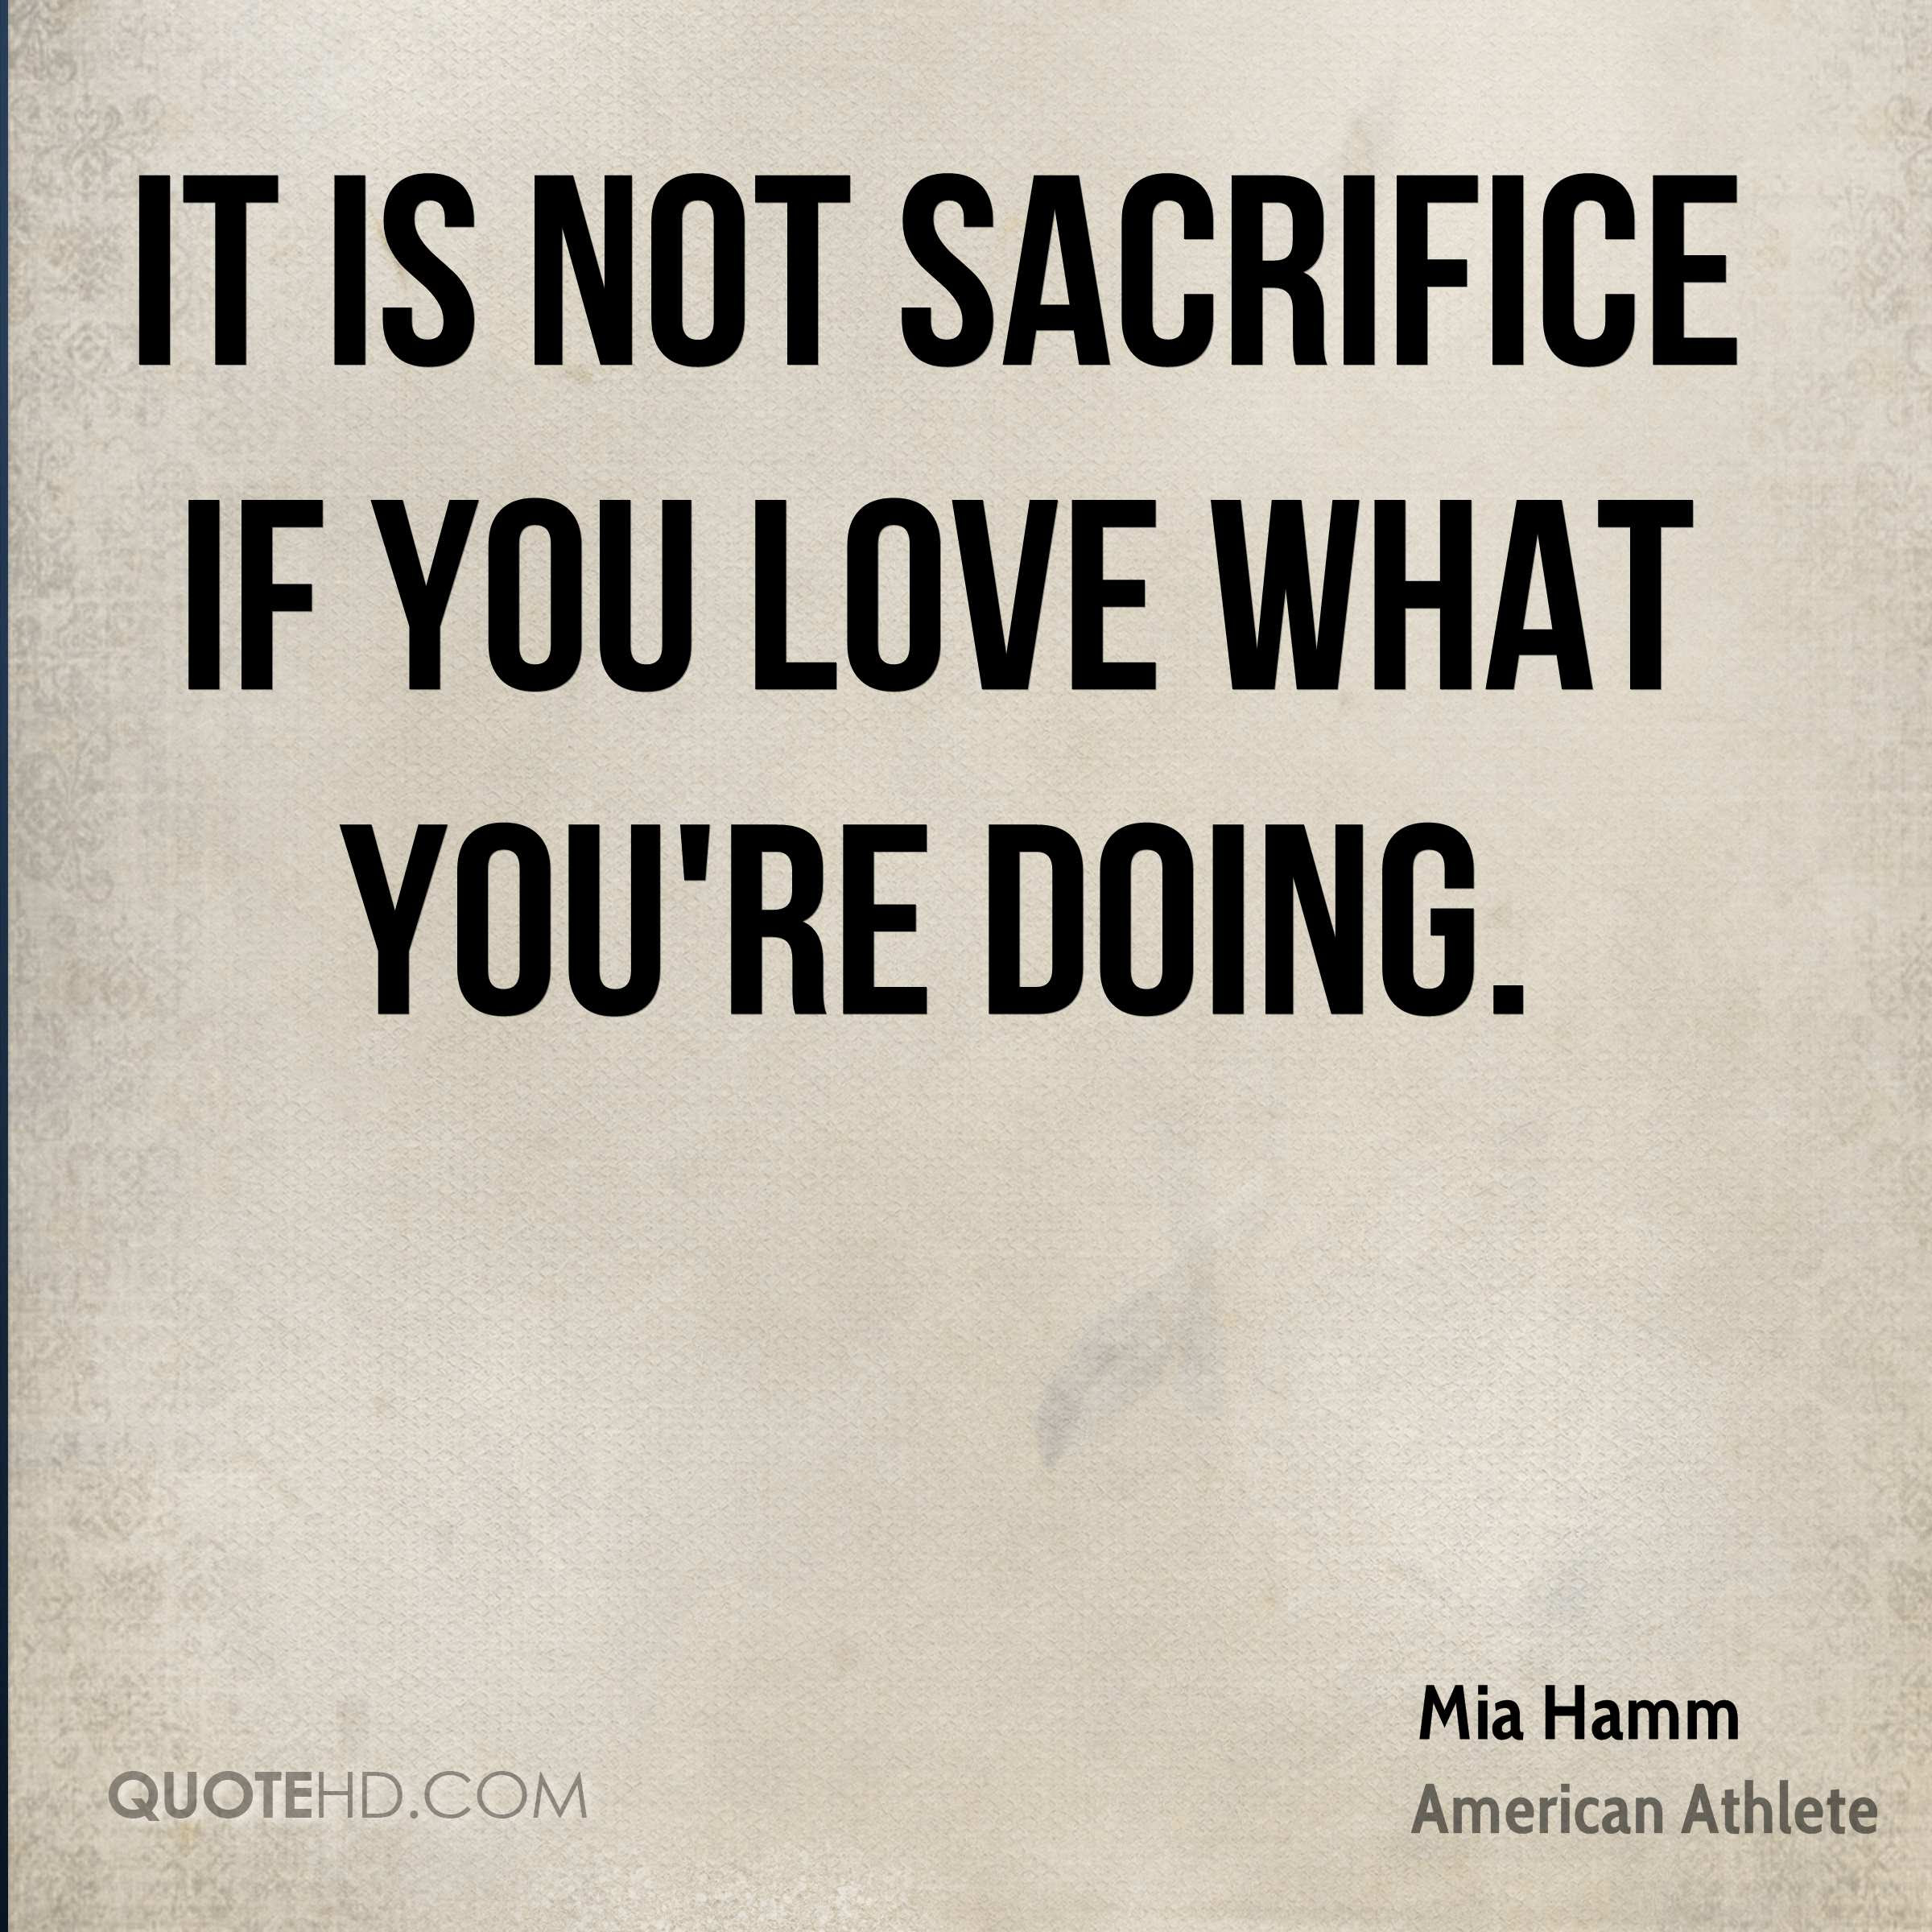 It is not sacrifice if you love what you re doing